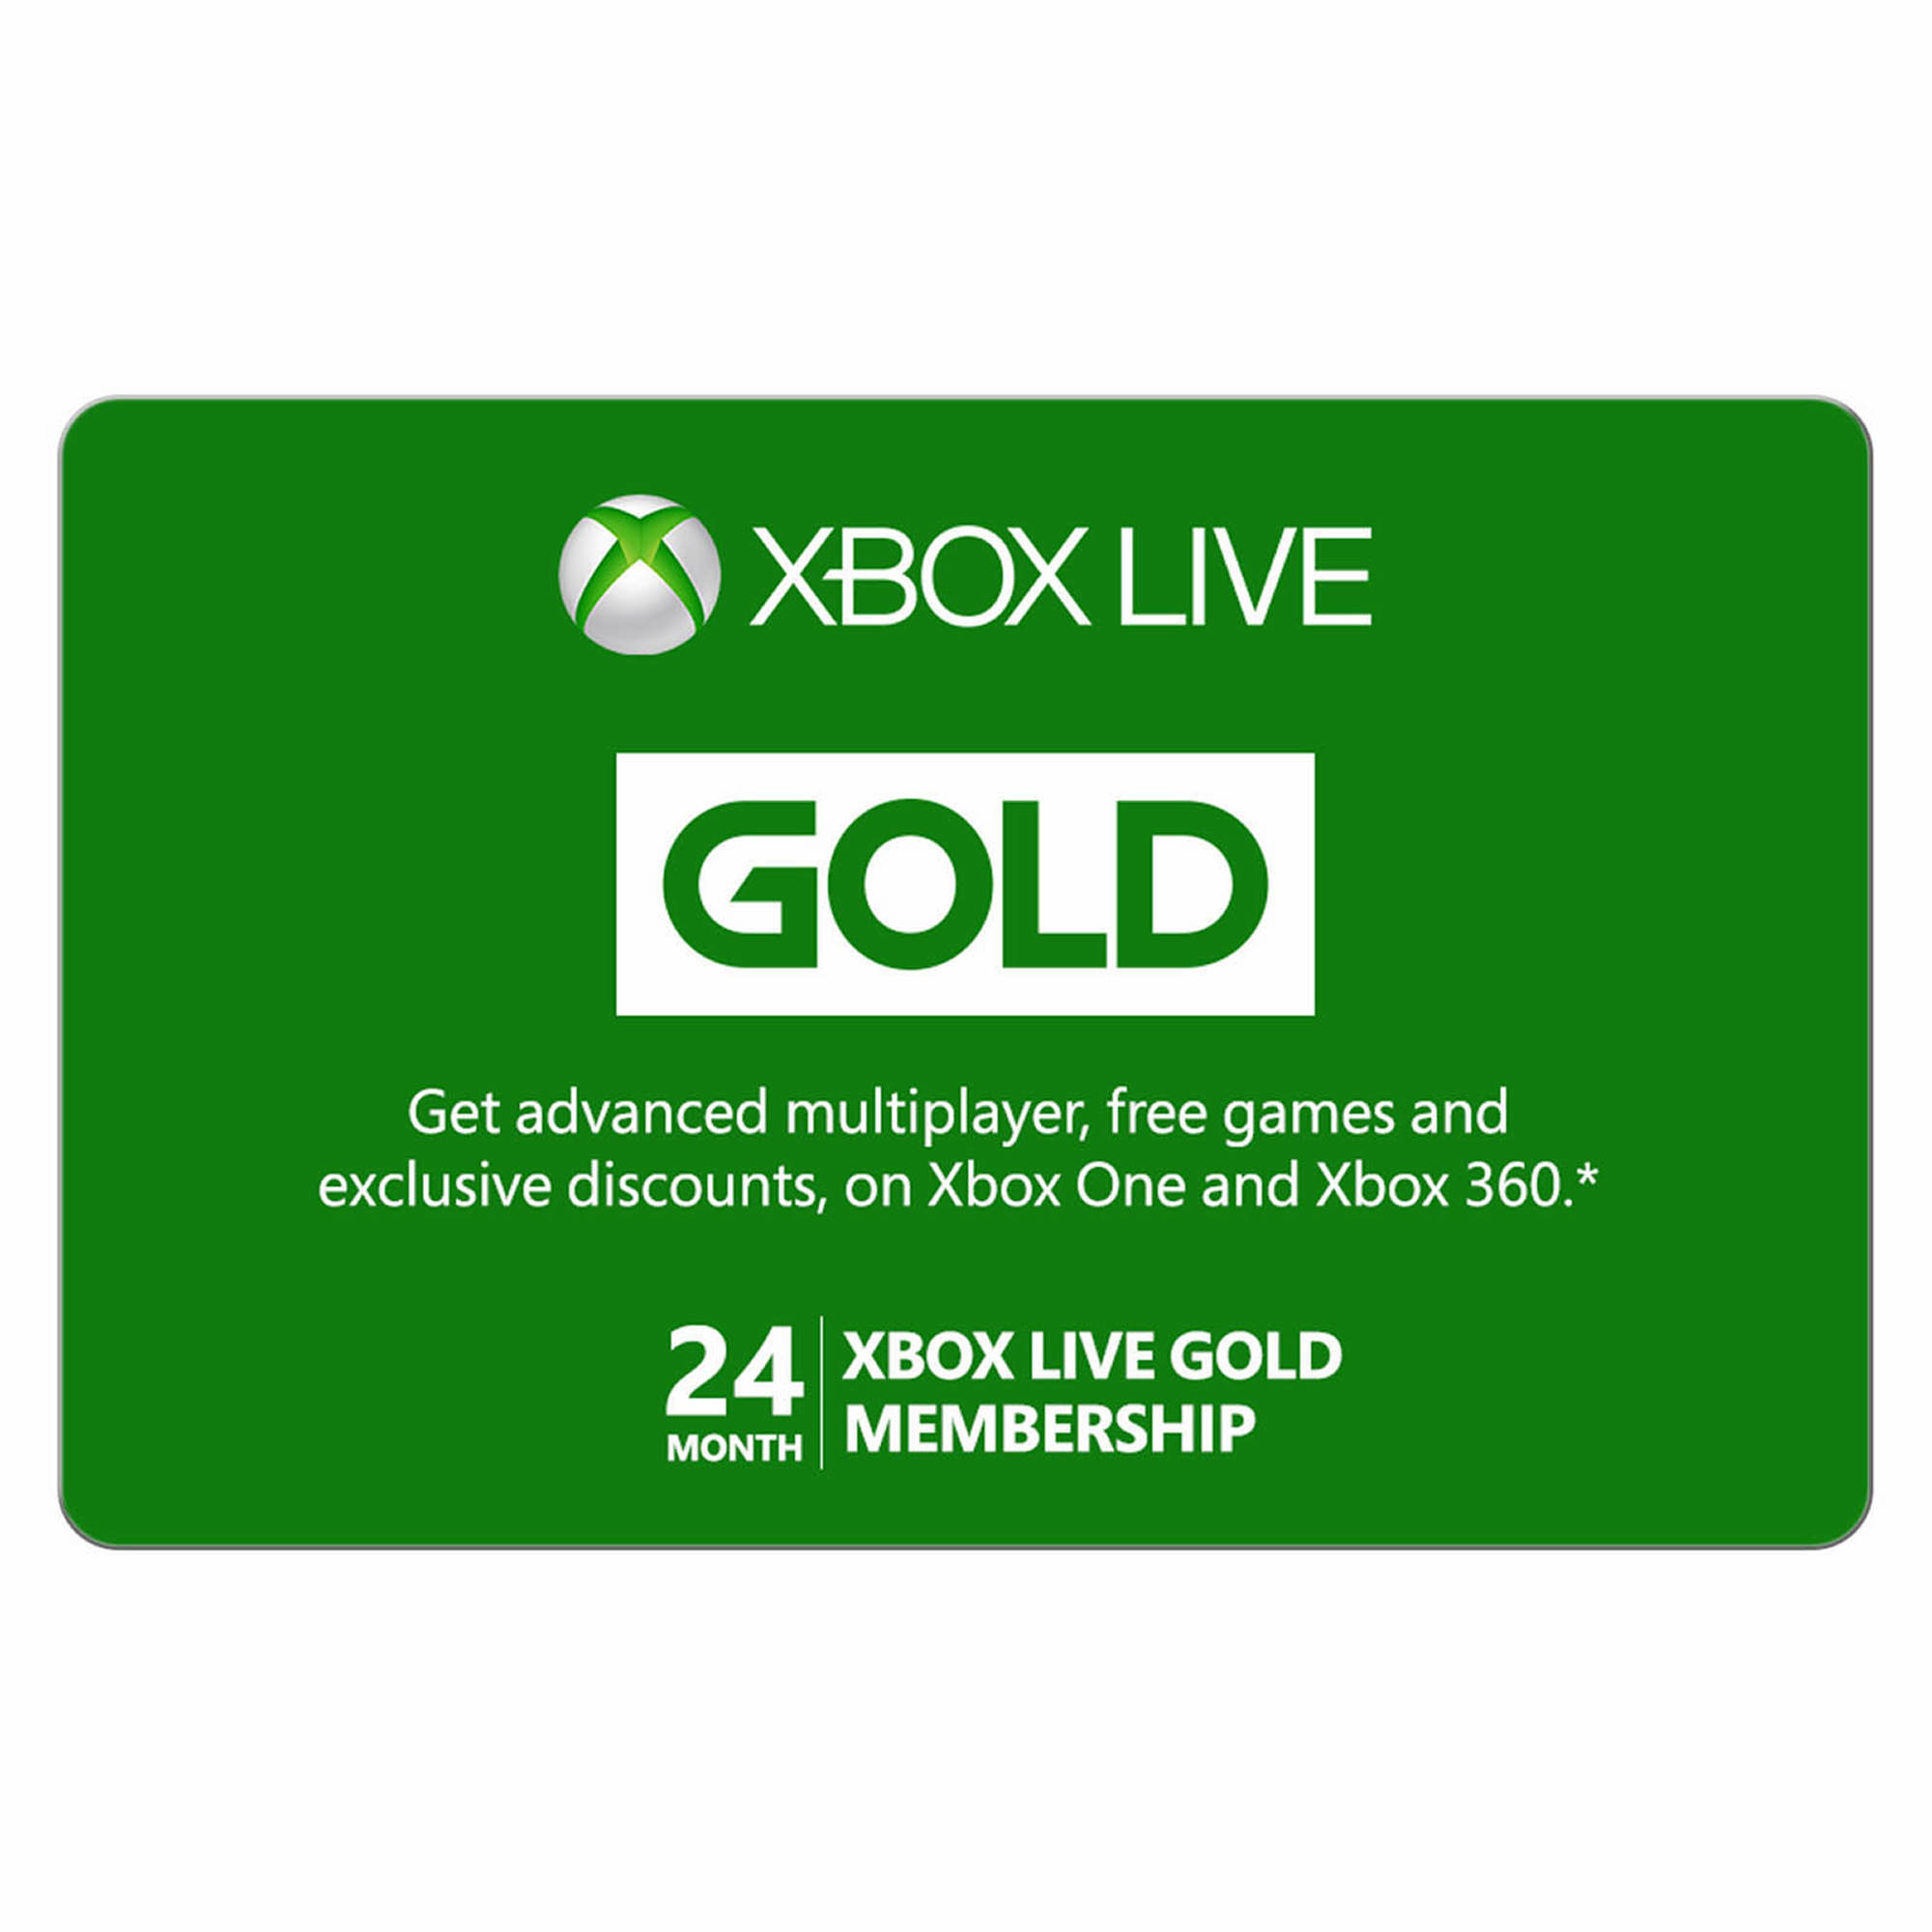 how to join xbox live party without gold